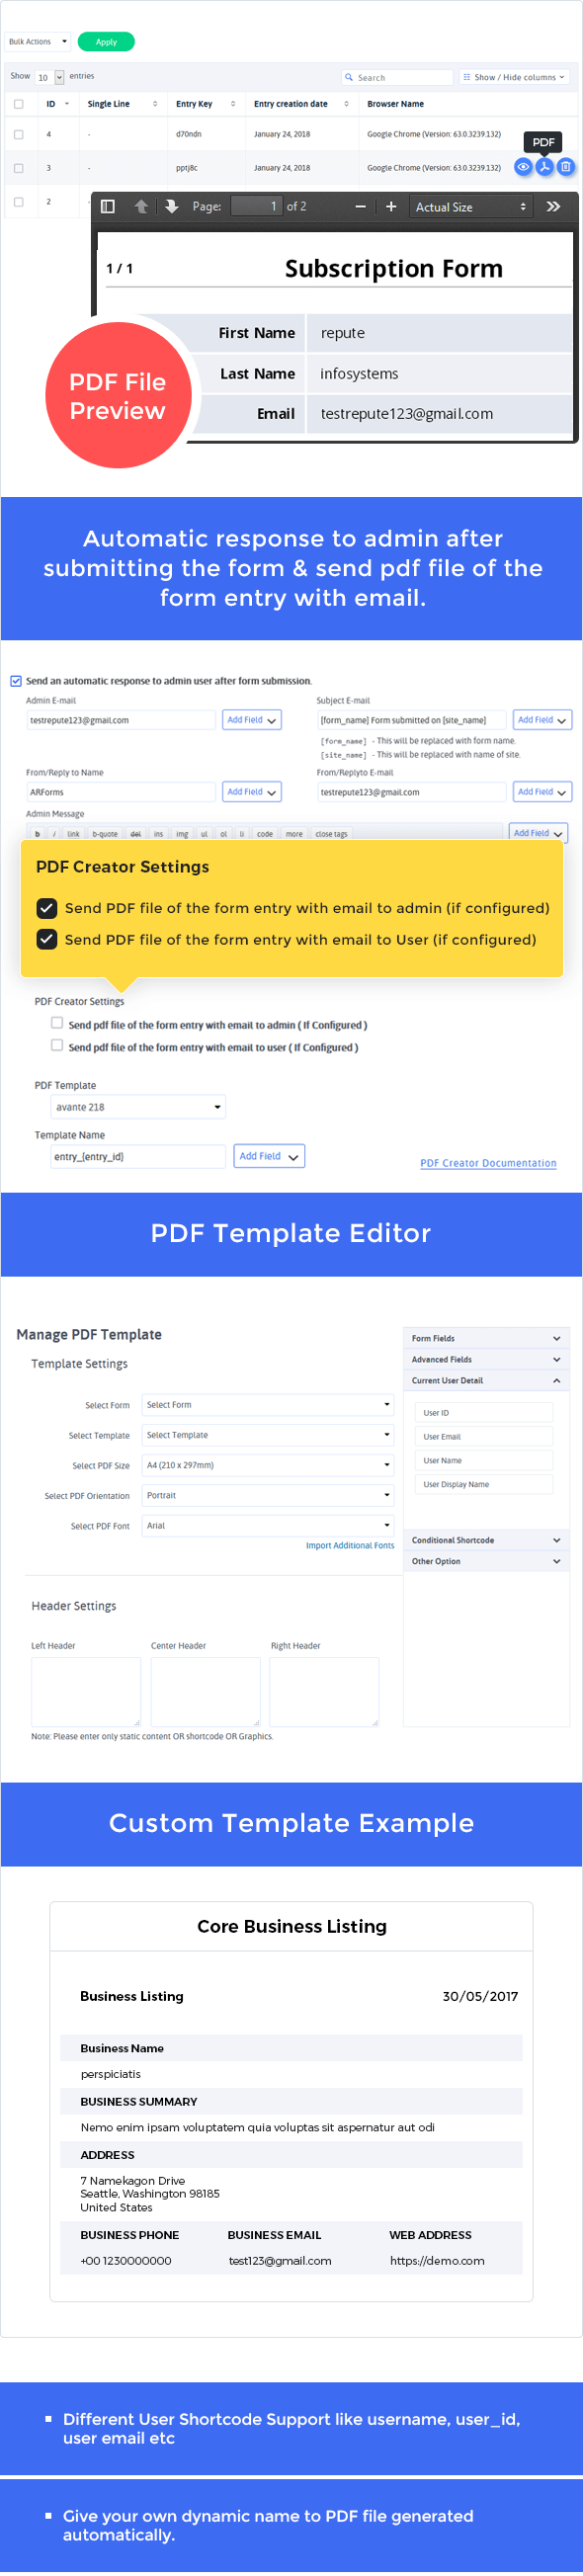 Pdf creator for Arforms - 3